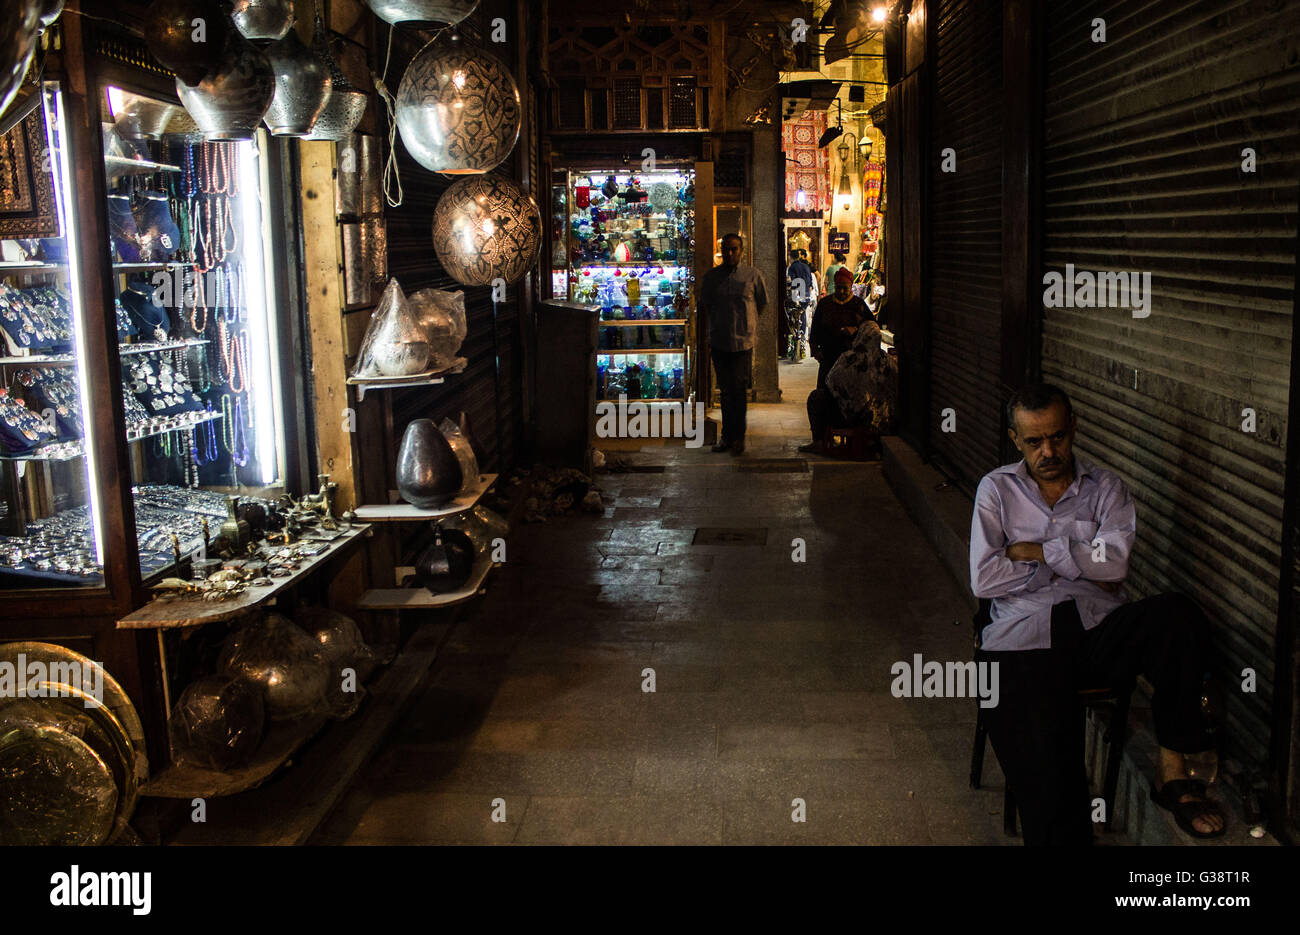 Cairo, Egypt. 9th June, 2016. A man sits in front of a shop lanterns in an area of Al-Azhar in Cairo.Lanterns and - Stock Image